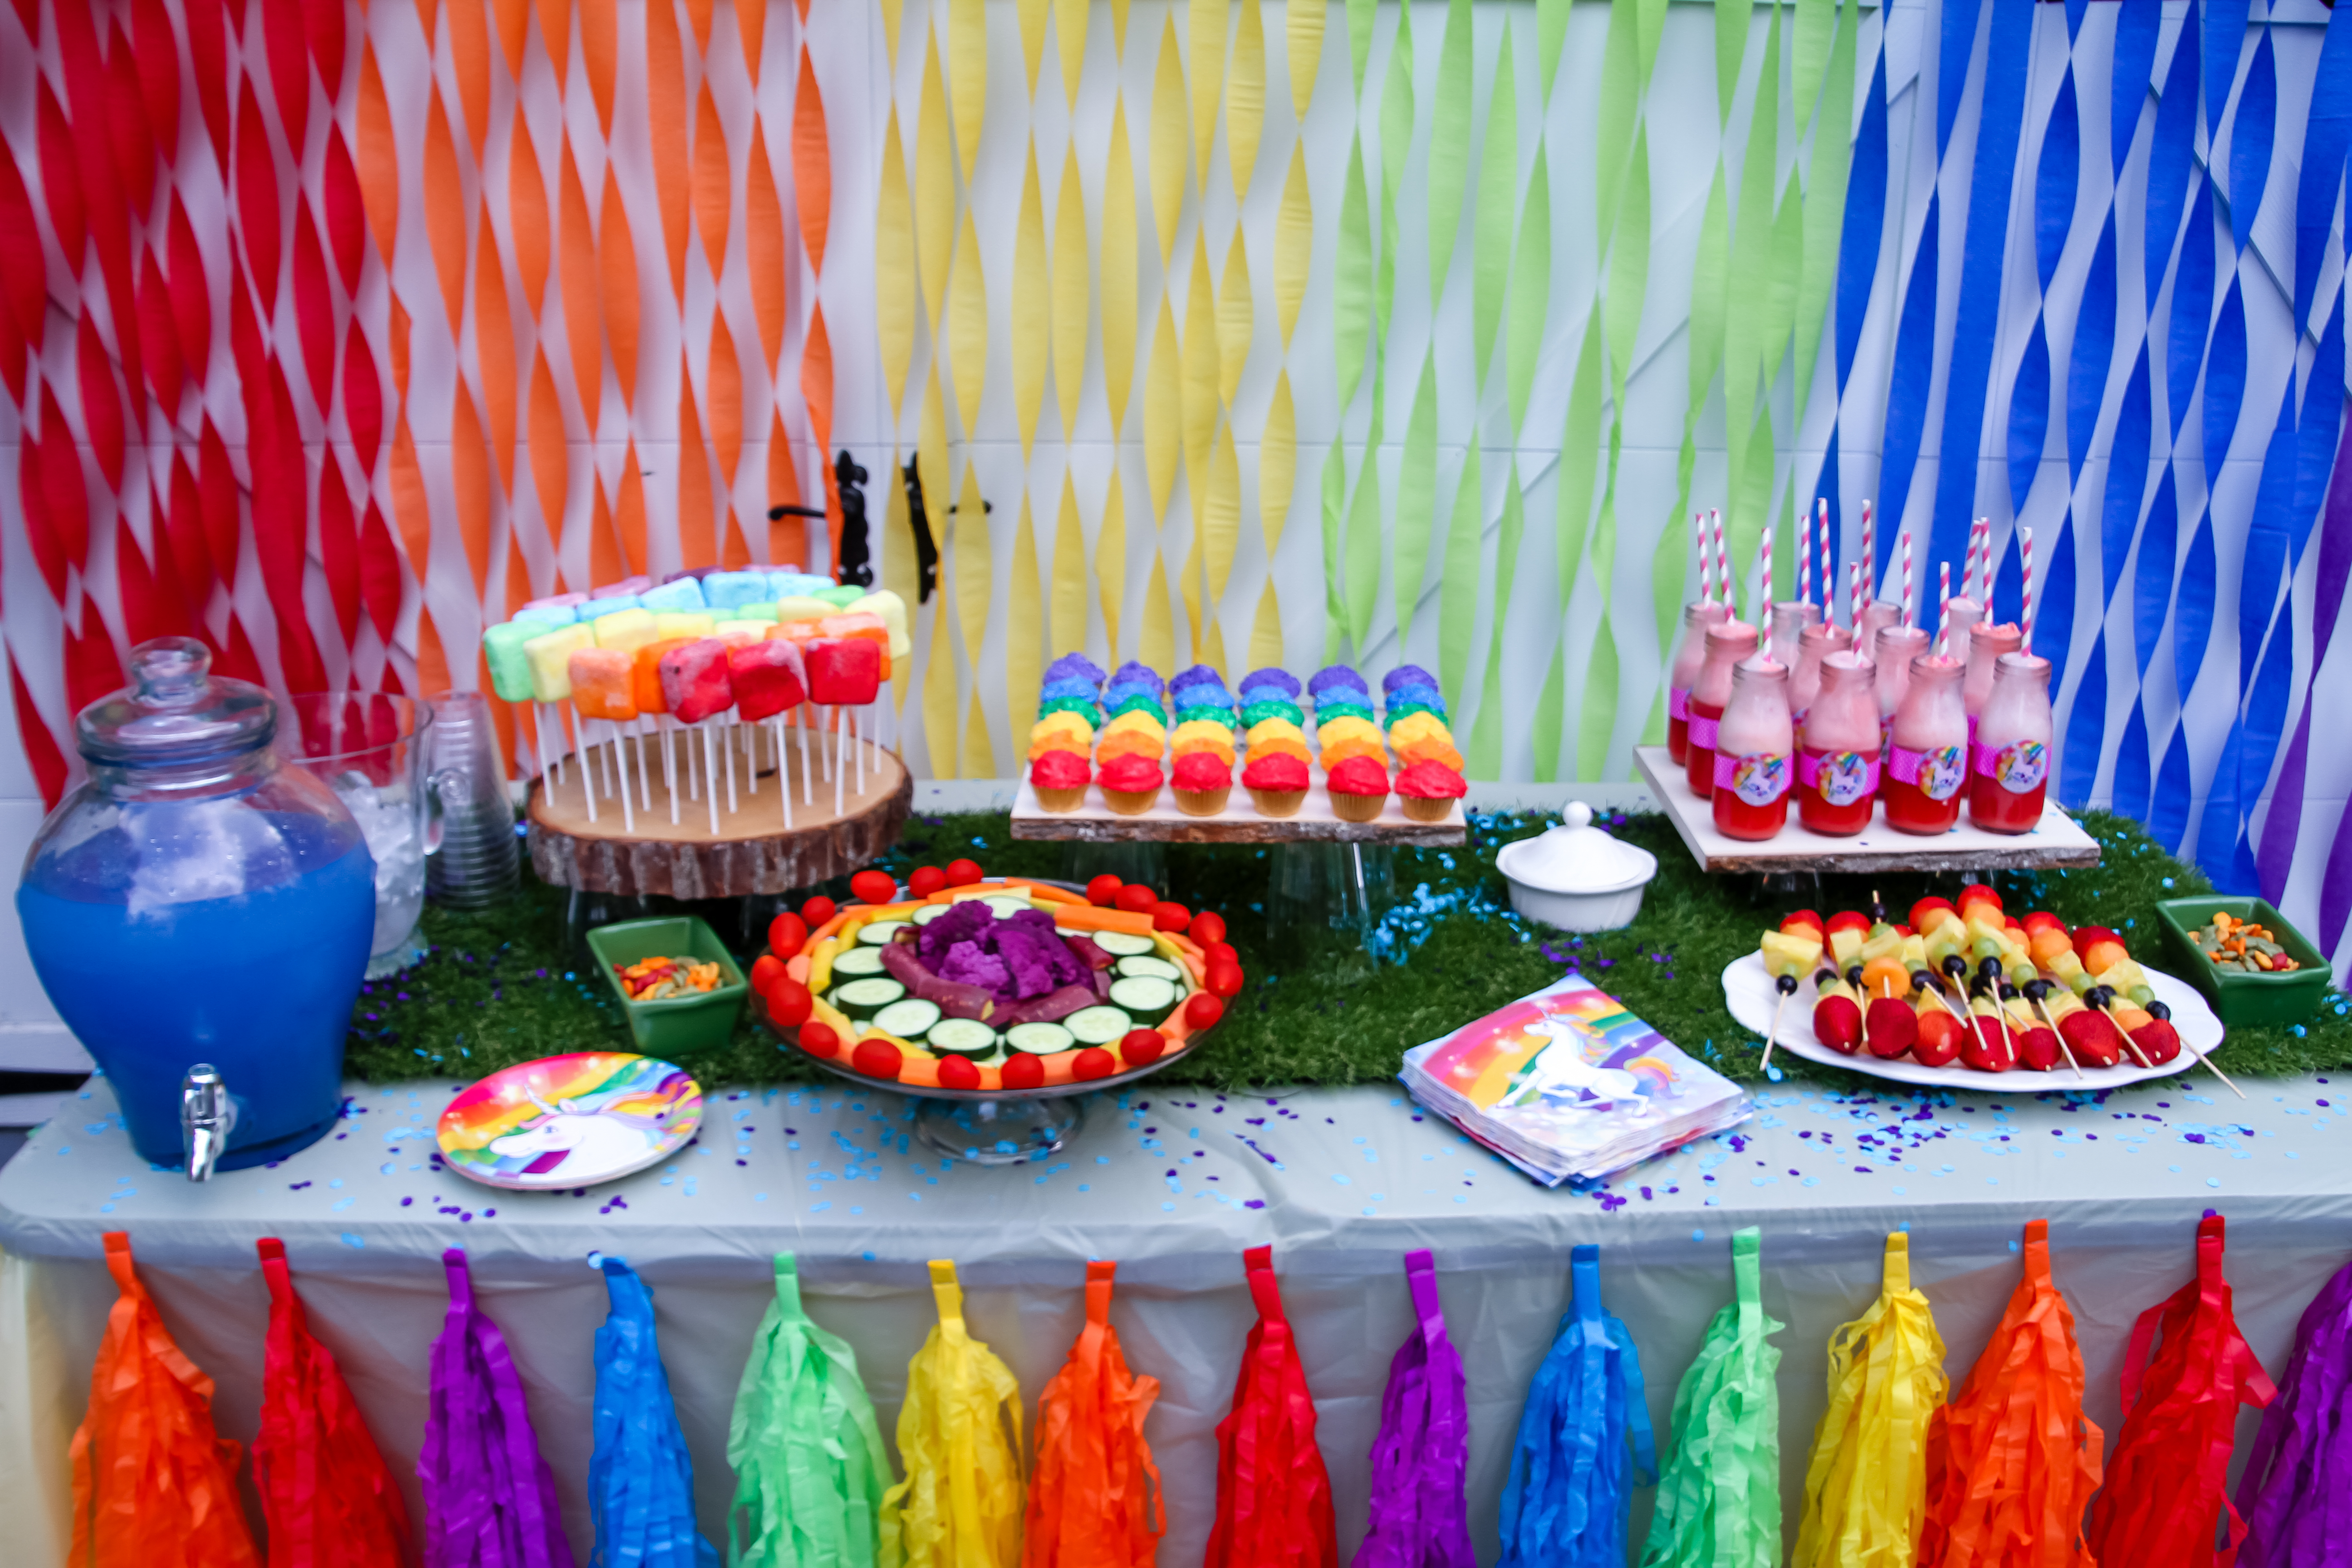 The Birthday Girl Was Very Pleased With Her Unicorn Rainbow Party We Decked Main Table Out In Everything That Could Think Of